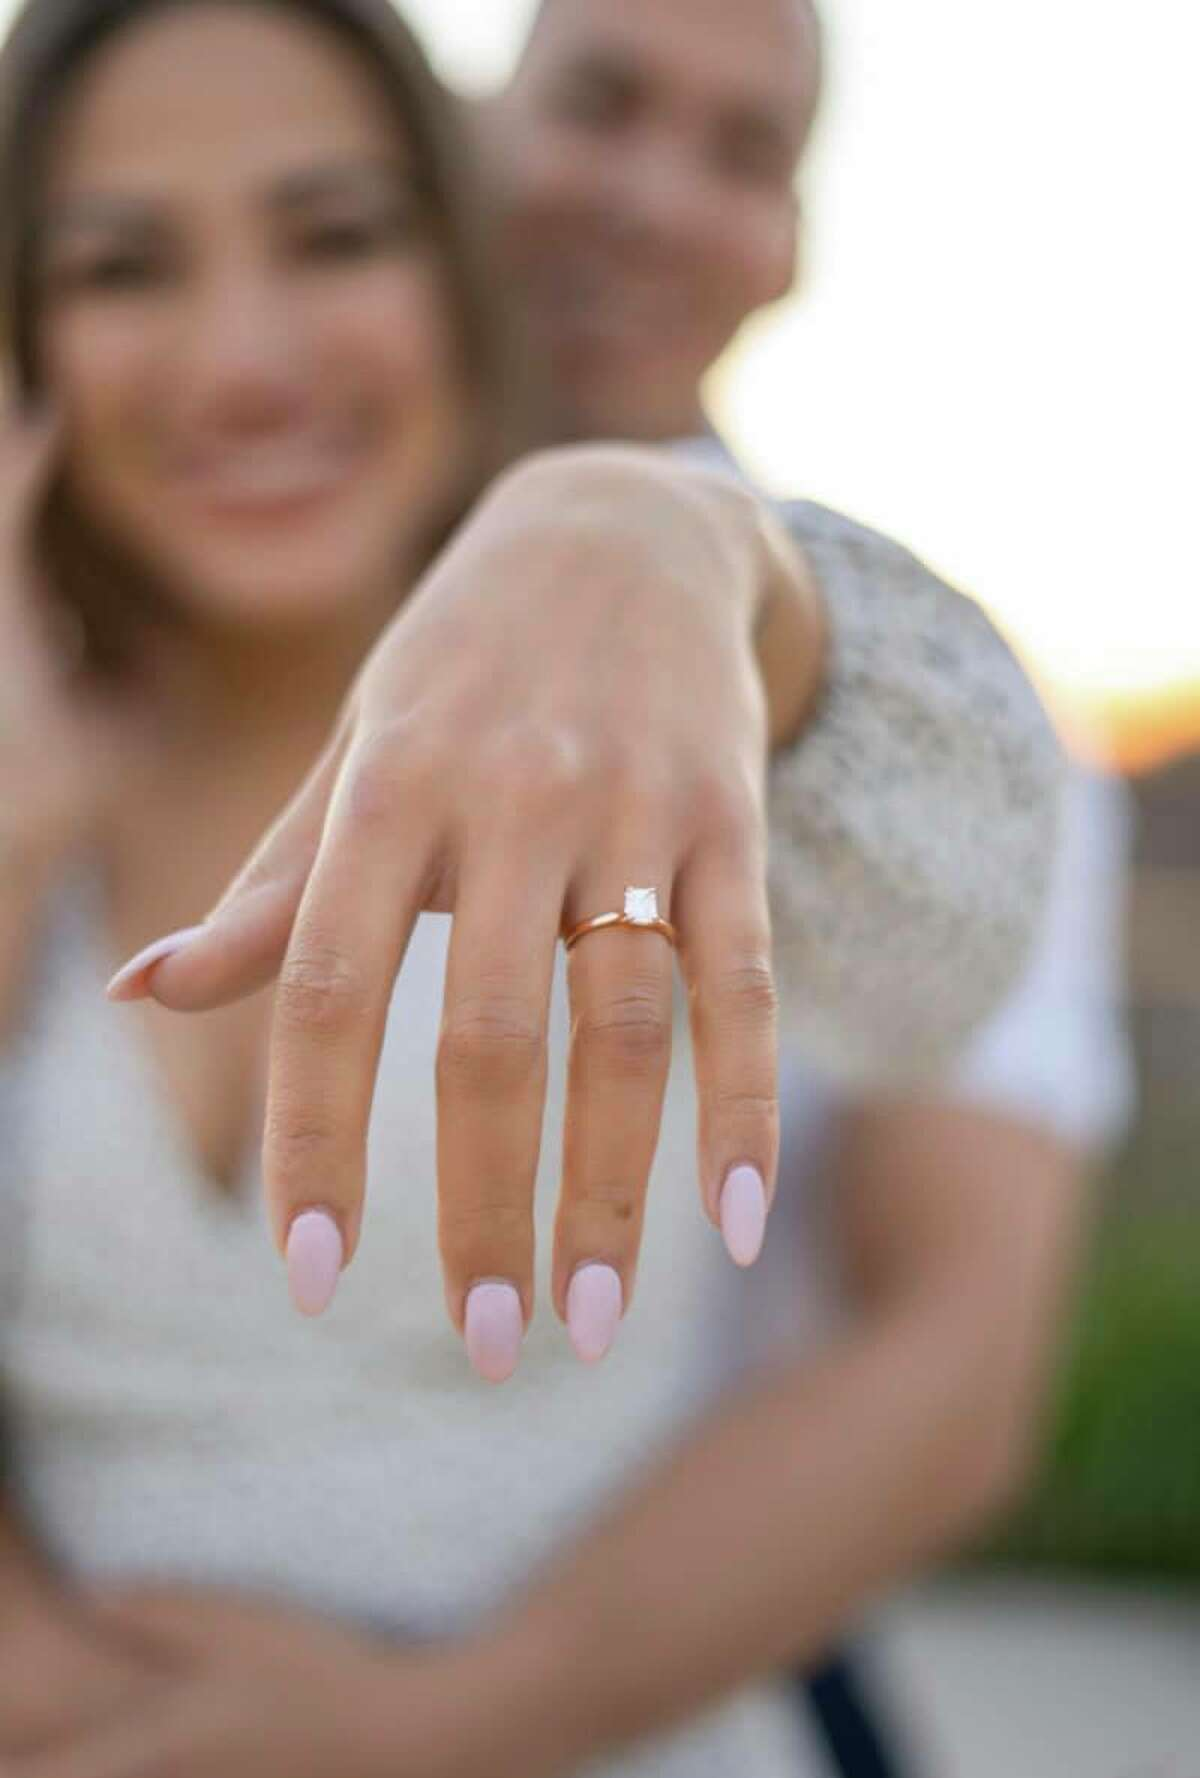 Clarke shares a photo of her engagement ring.